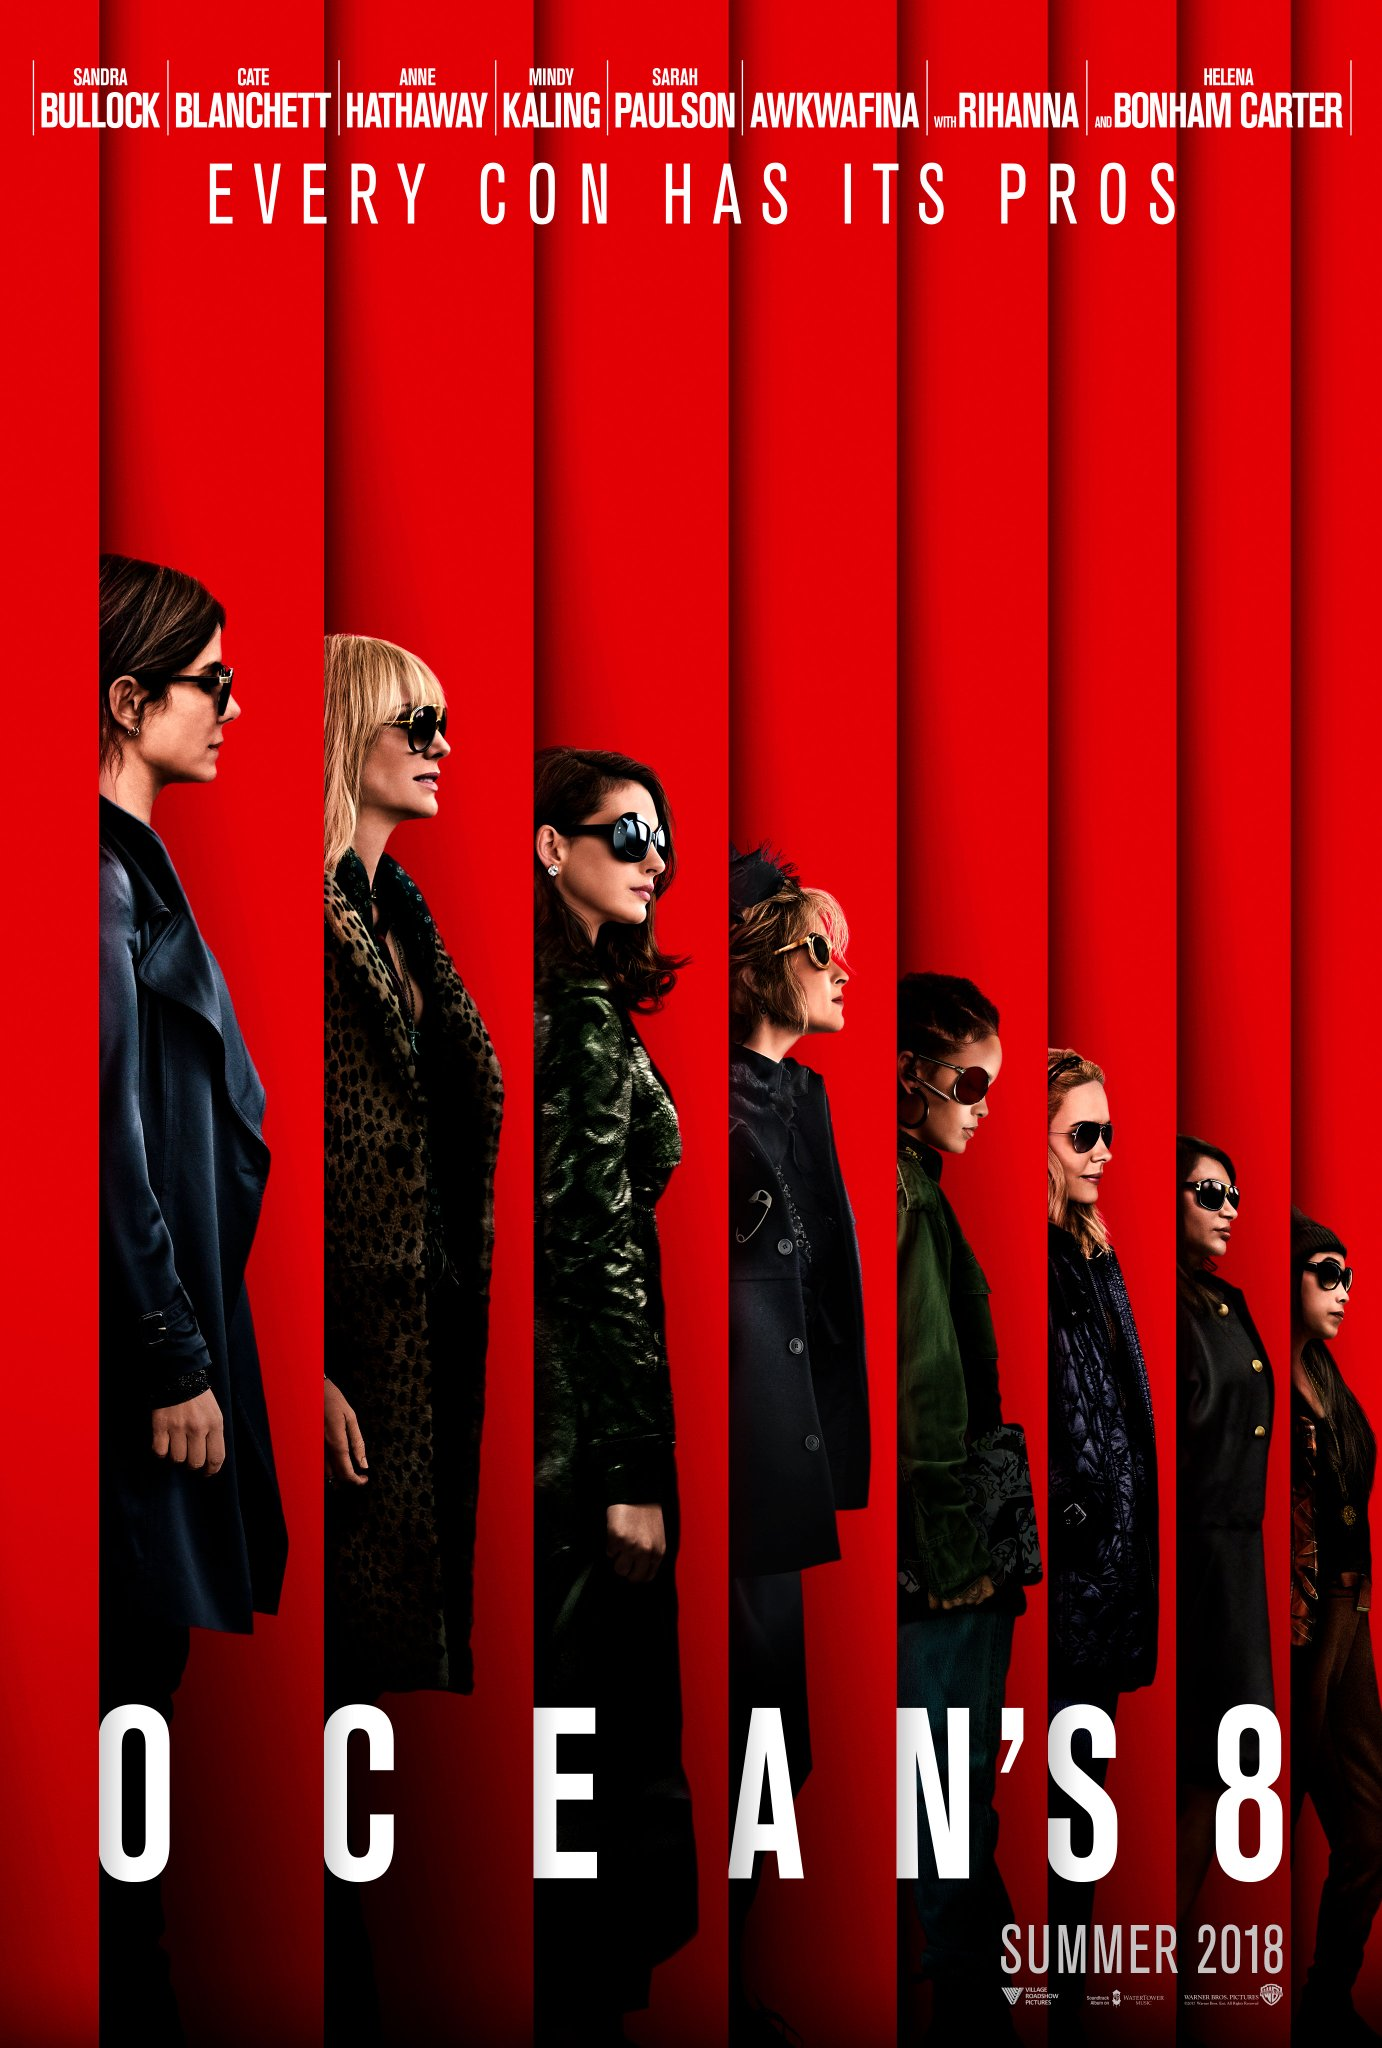 Ocean's 8 (2018) - Directed by: Gary RossStarring: Sandra Bullock, Cate Blanchett, Anne HathawayRated: PG-13Running Time: 1h 50mTMM Score: 2 stars out of 5STRENGTHS: Star Power?WEAKNESSES: Boring, Character Development